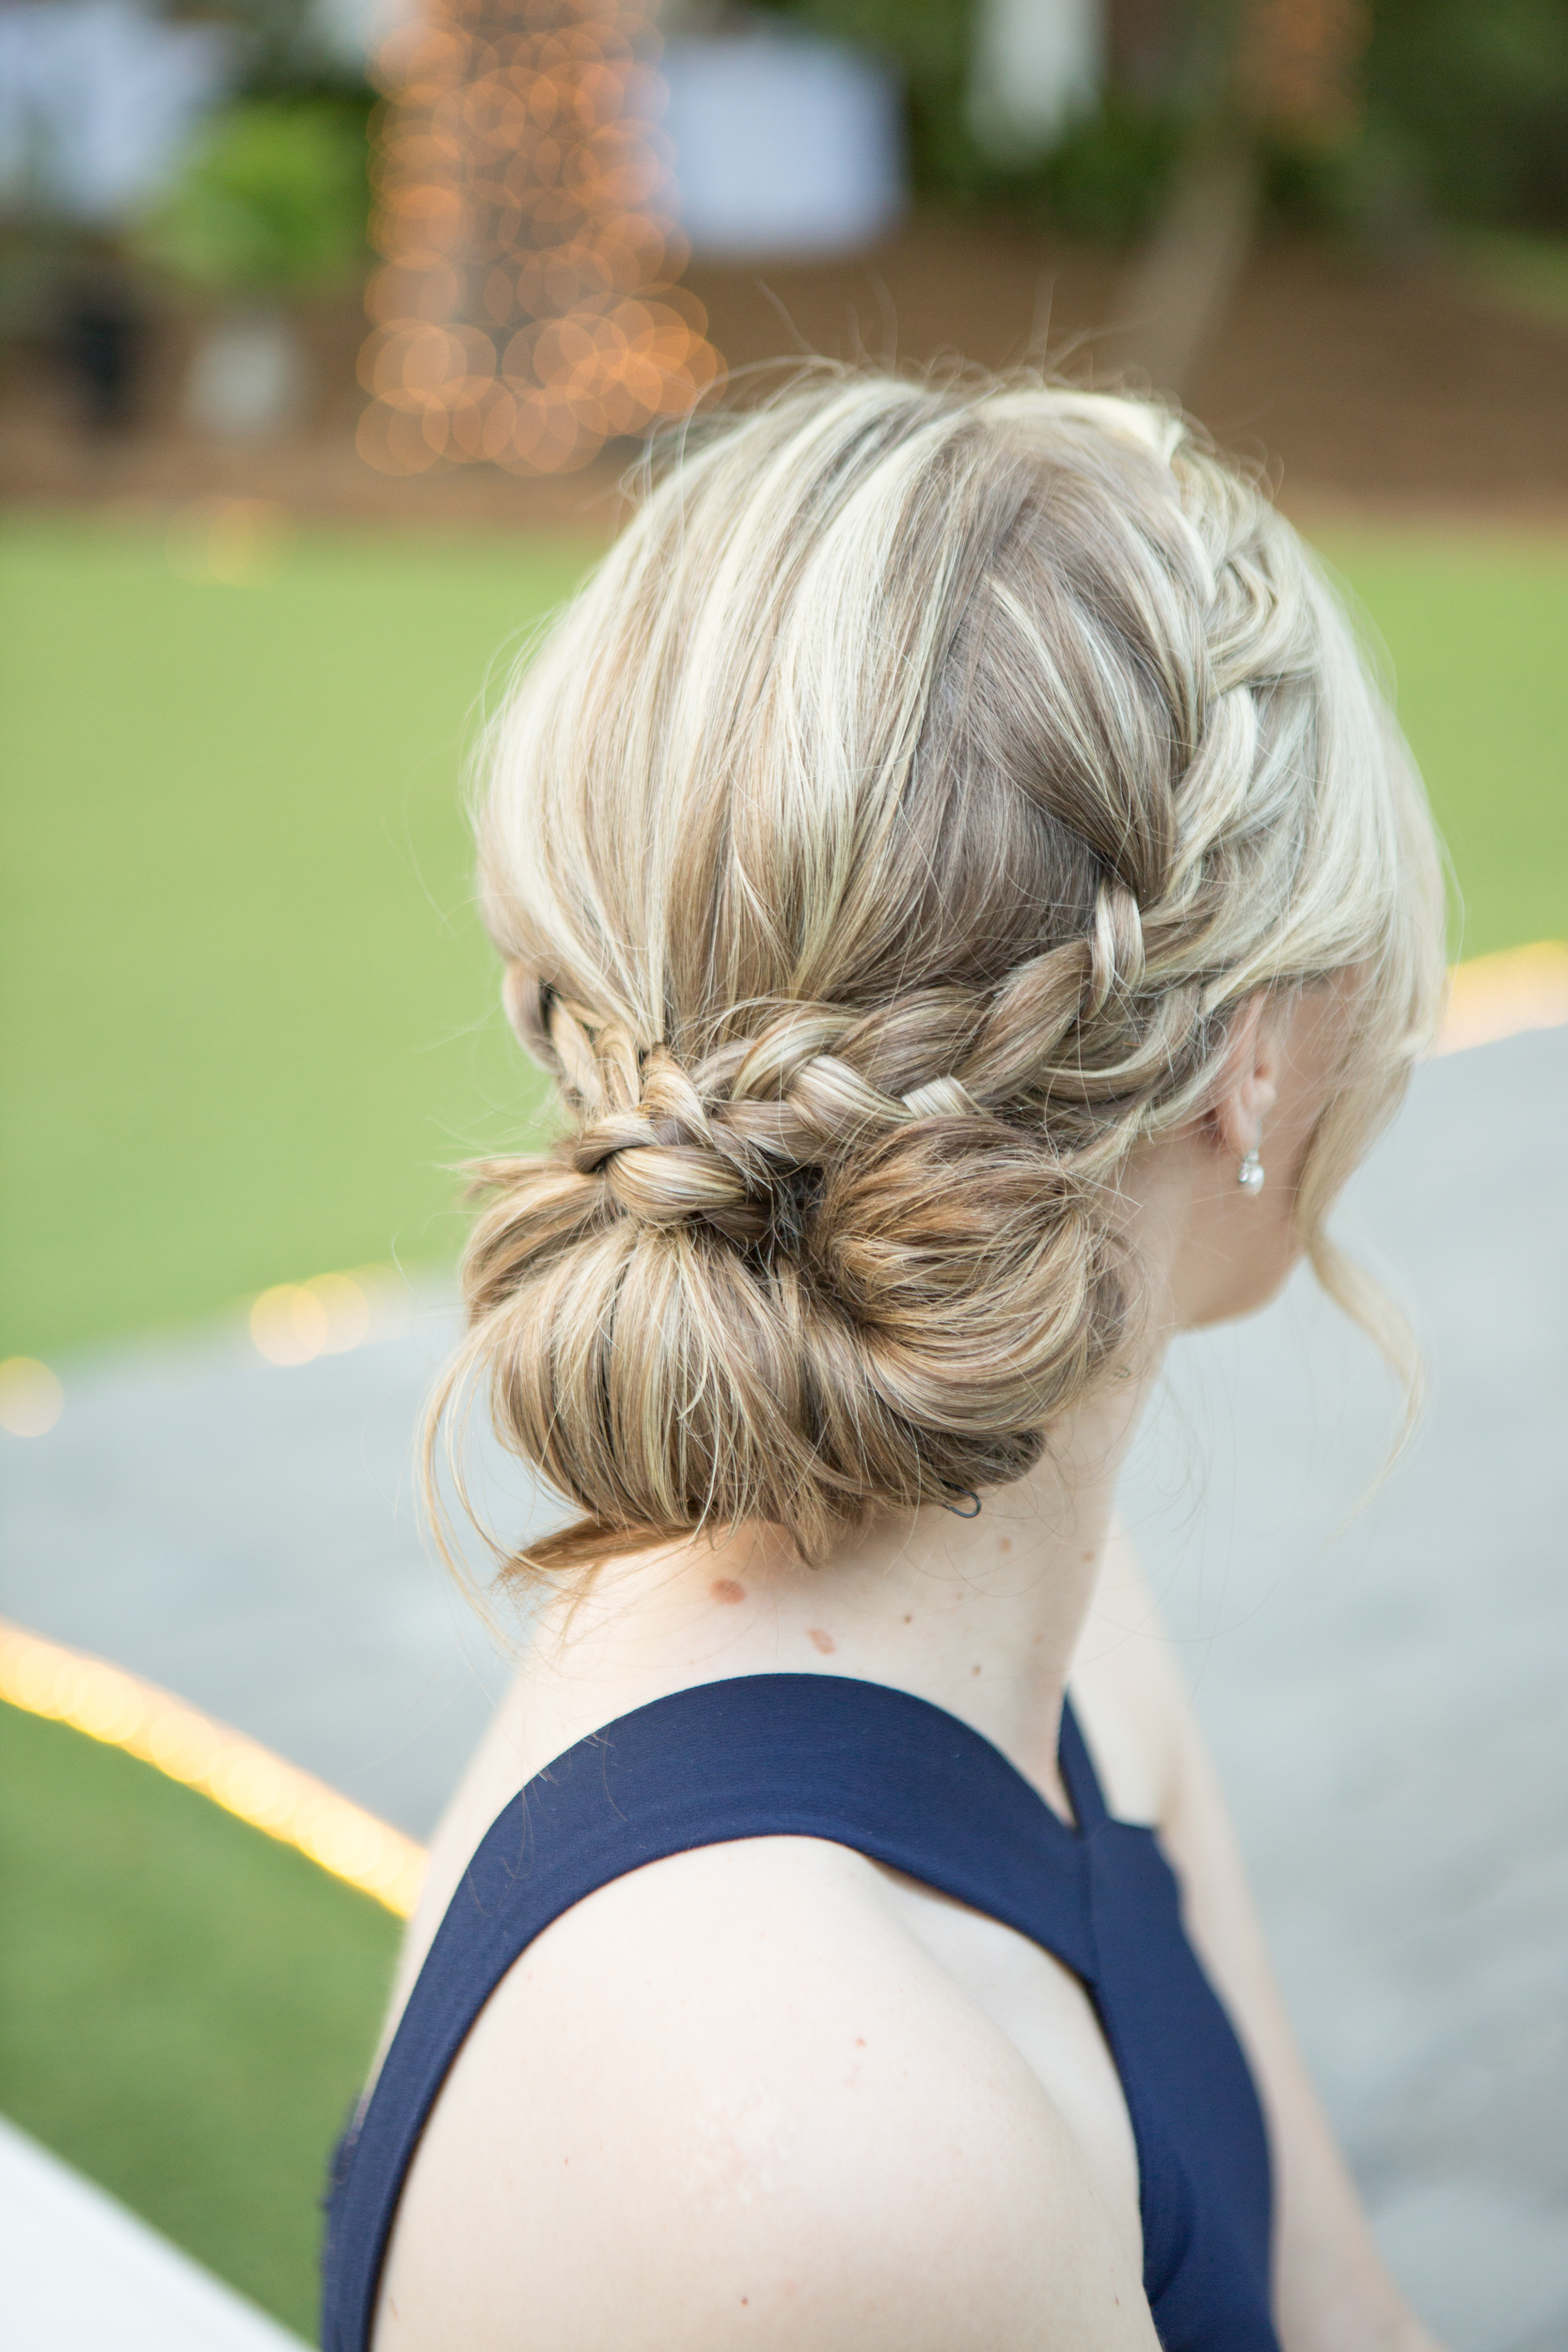 Braided up-do for wedding in Savannah GA by ROBS at Drayton Tower